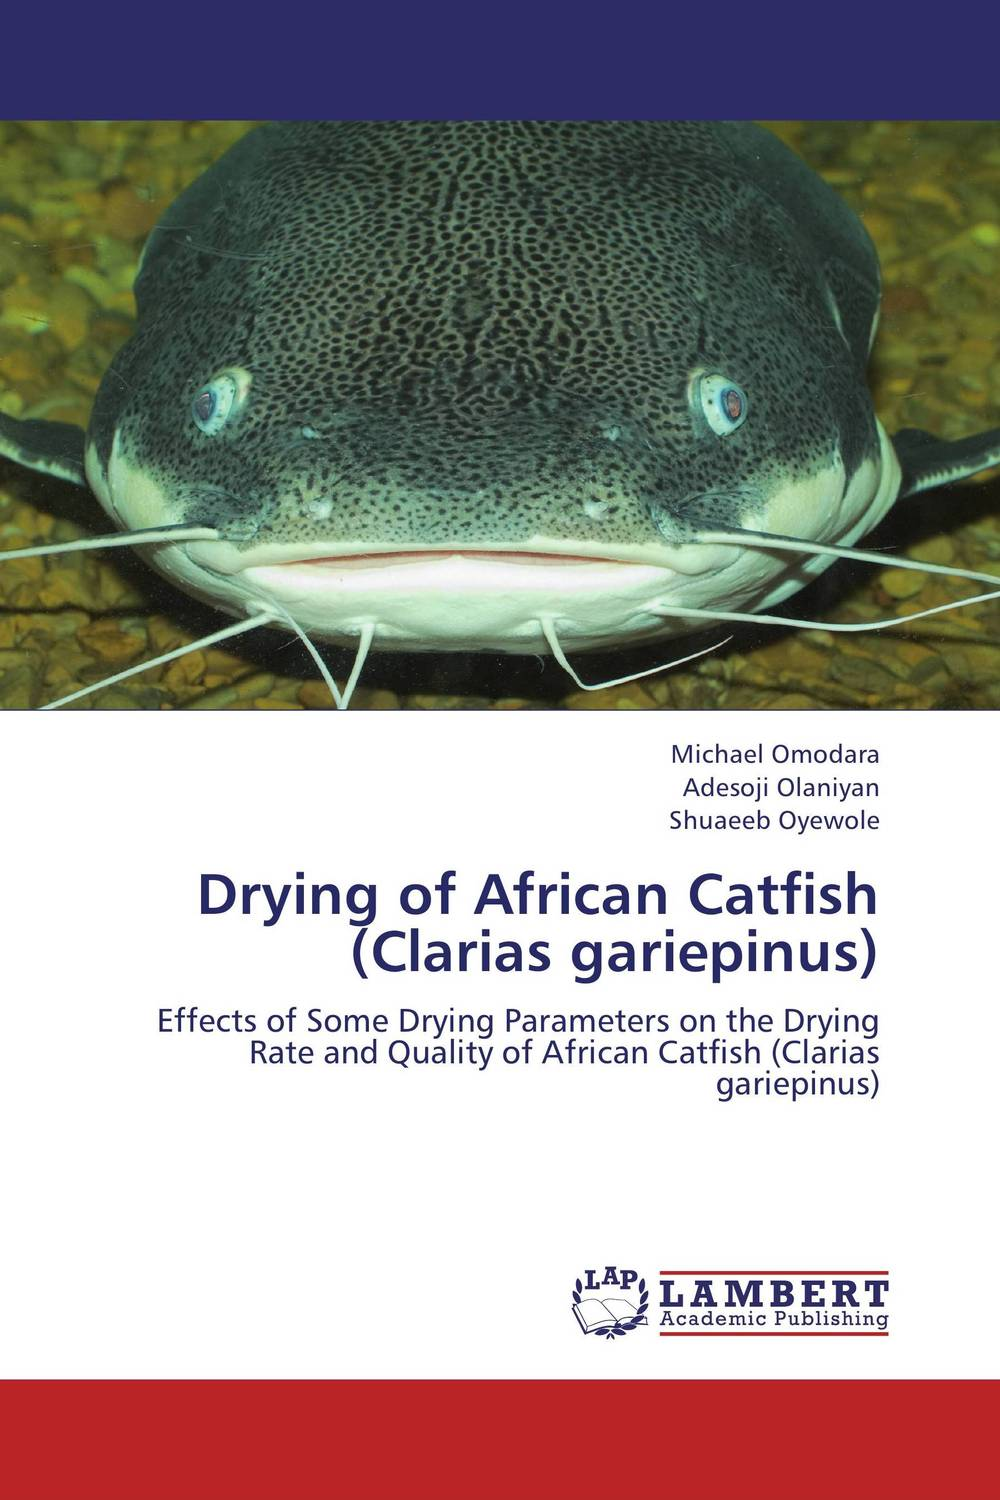 Drying of African Catfish (Clarias gariepinus) presidential nominee will address a gathering